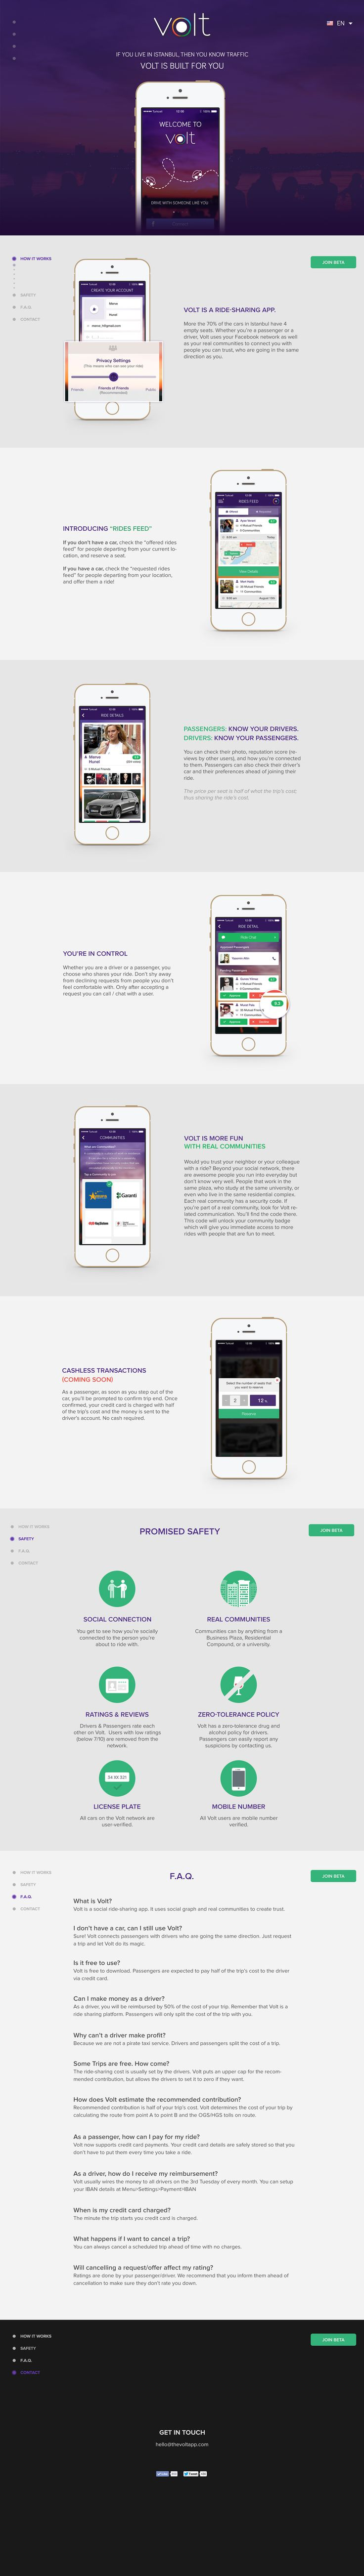 Volt App Website | #webdesign #flatui #ui